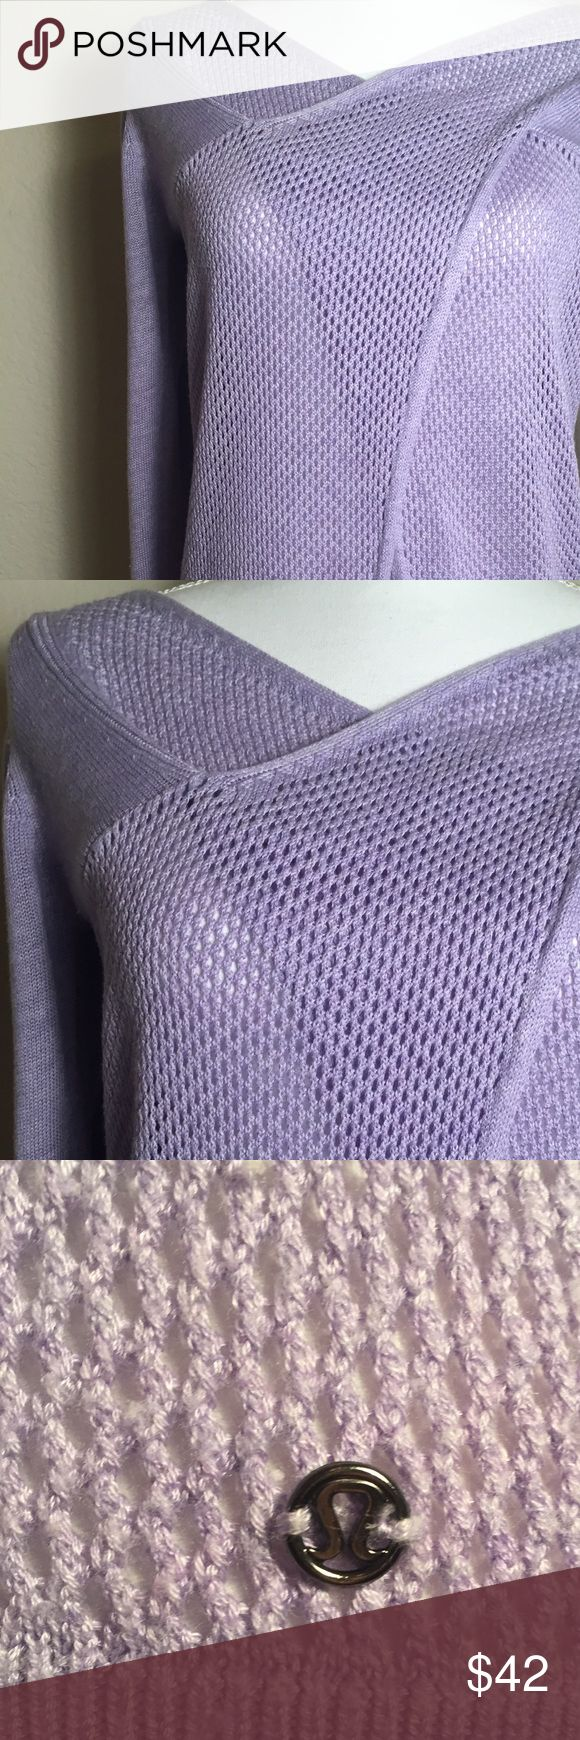 "Lululemon Sweater Beautiful lavender sweater. Crossover style with open weave detail. Bust measures 34"". Length is 23"". Good conditio. 🇺🇸 lululemon athletica Sweaters Cardigans"